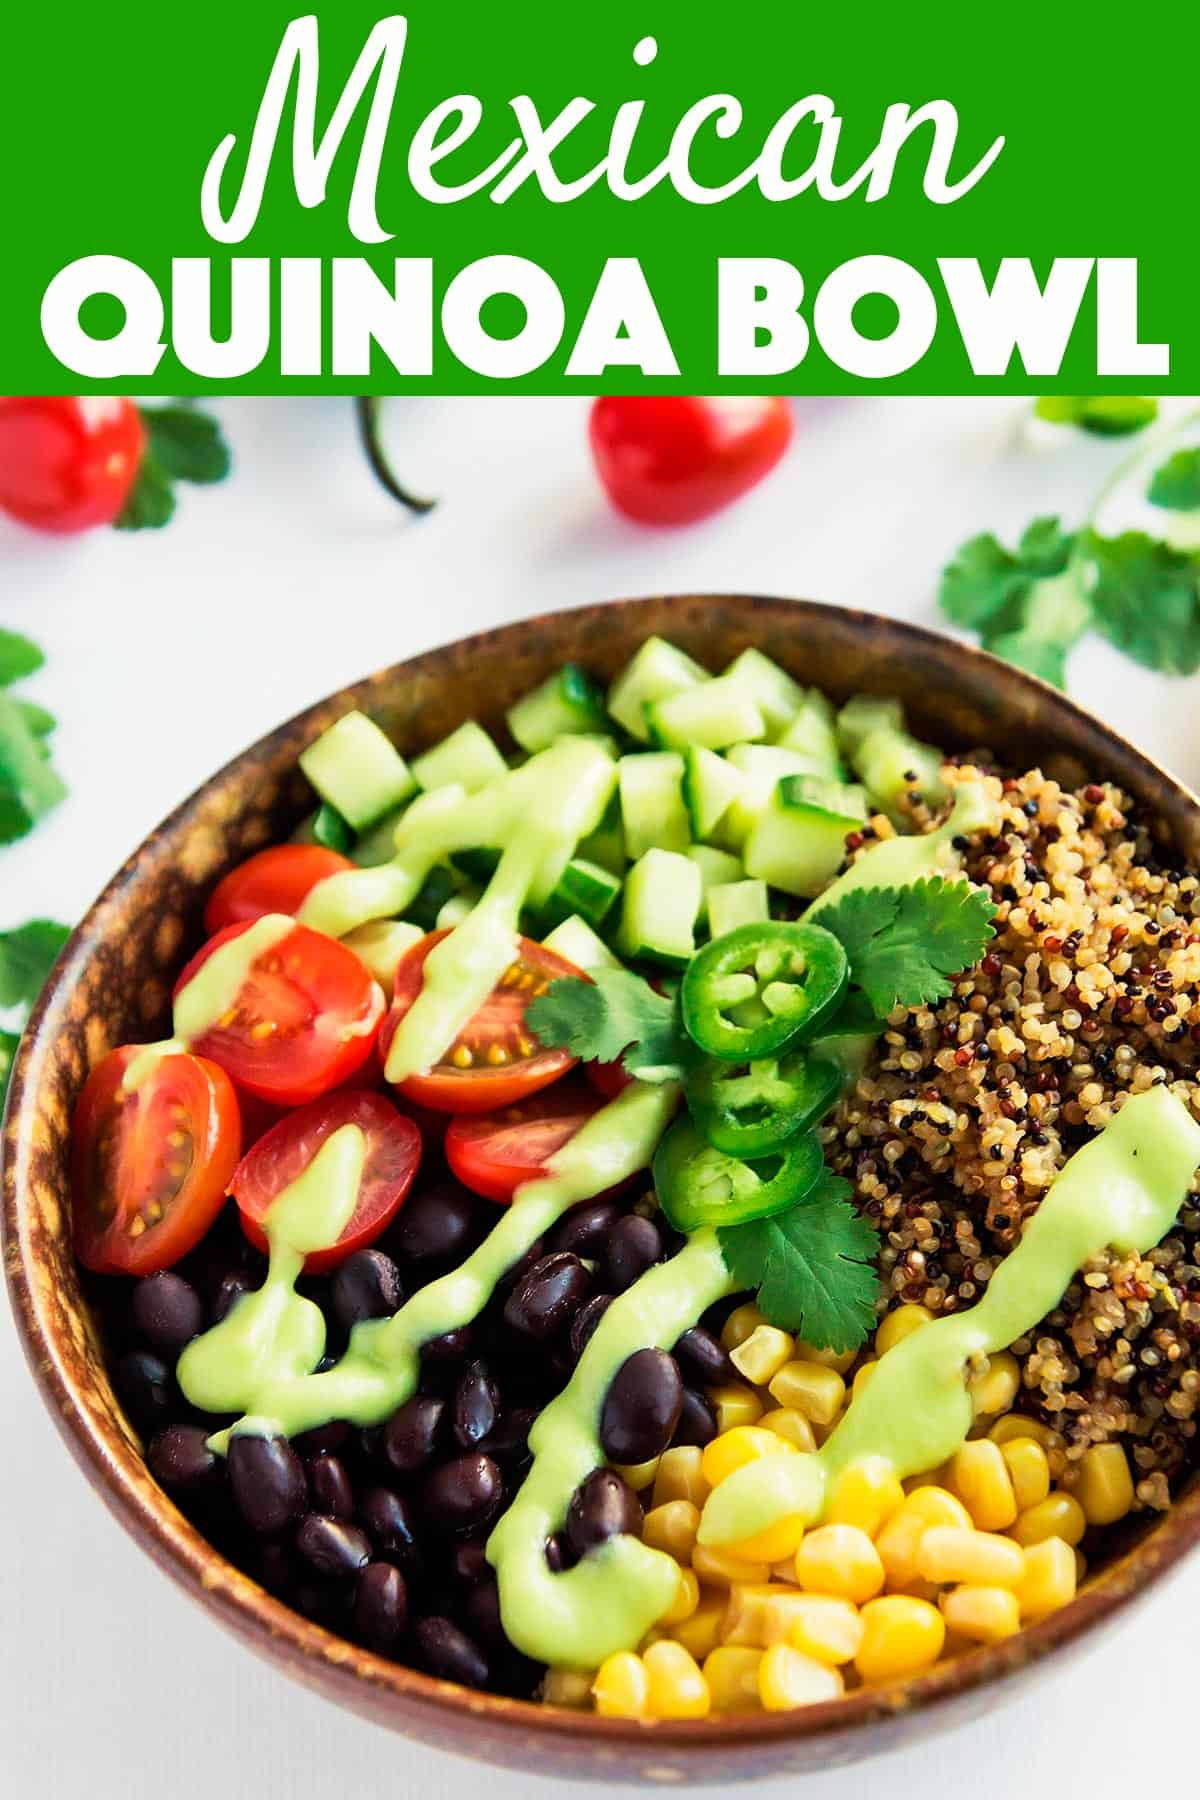 Mexican Quinoa Bowl with Avocado Salsa